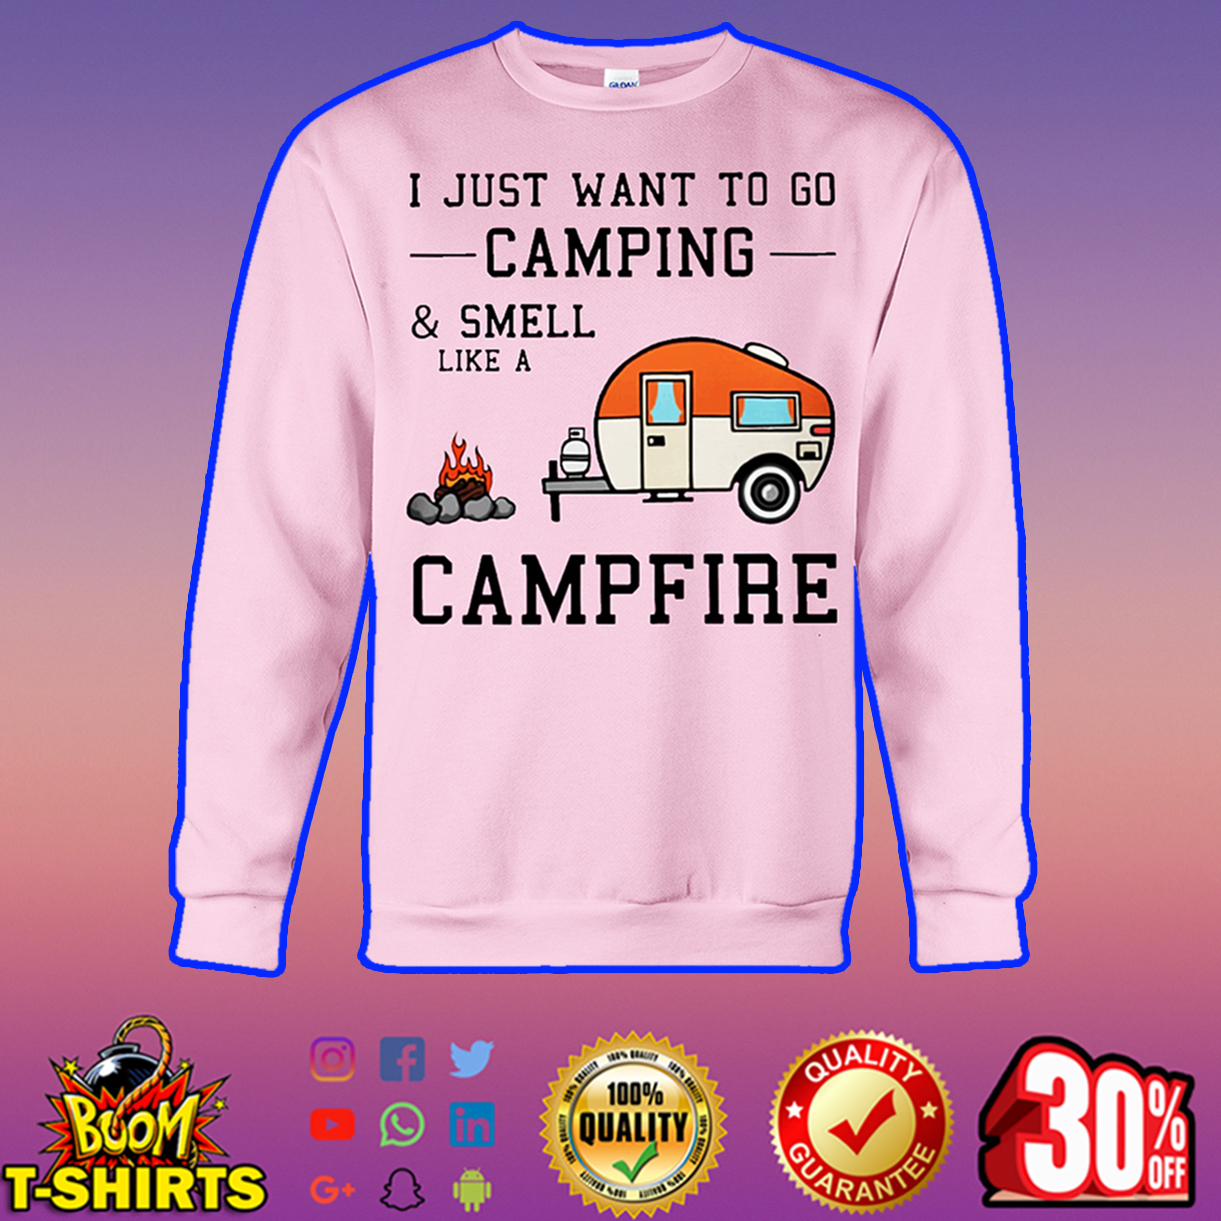 I just want to go camping and smell like a campfire sweatshirt